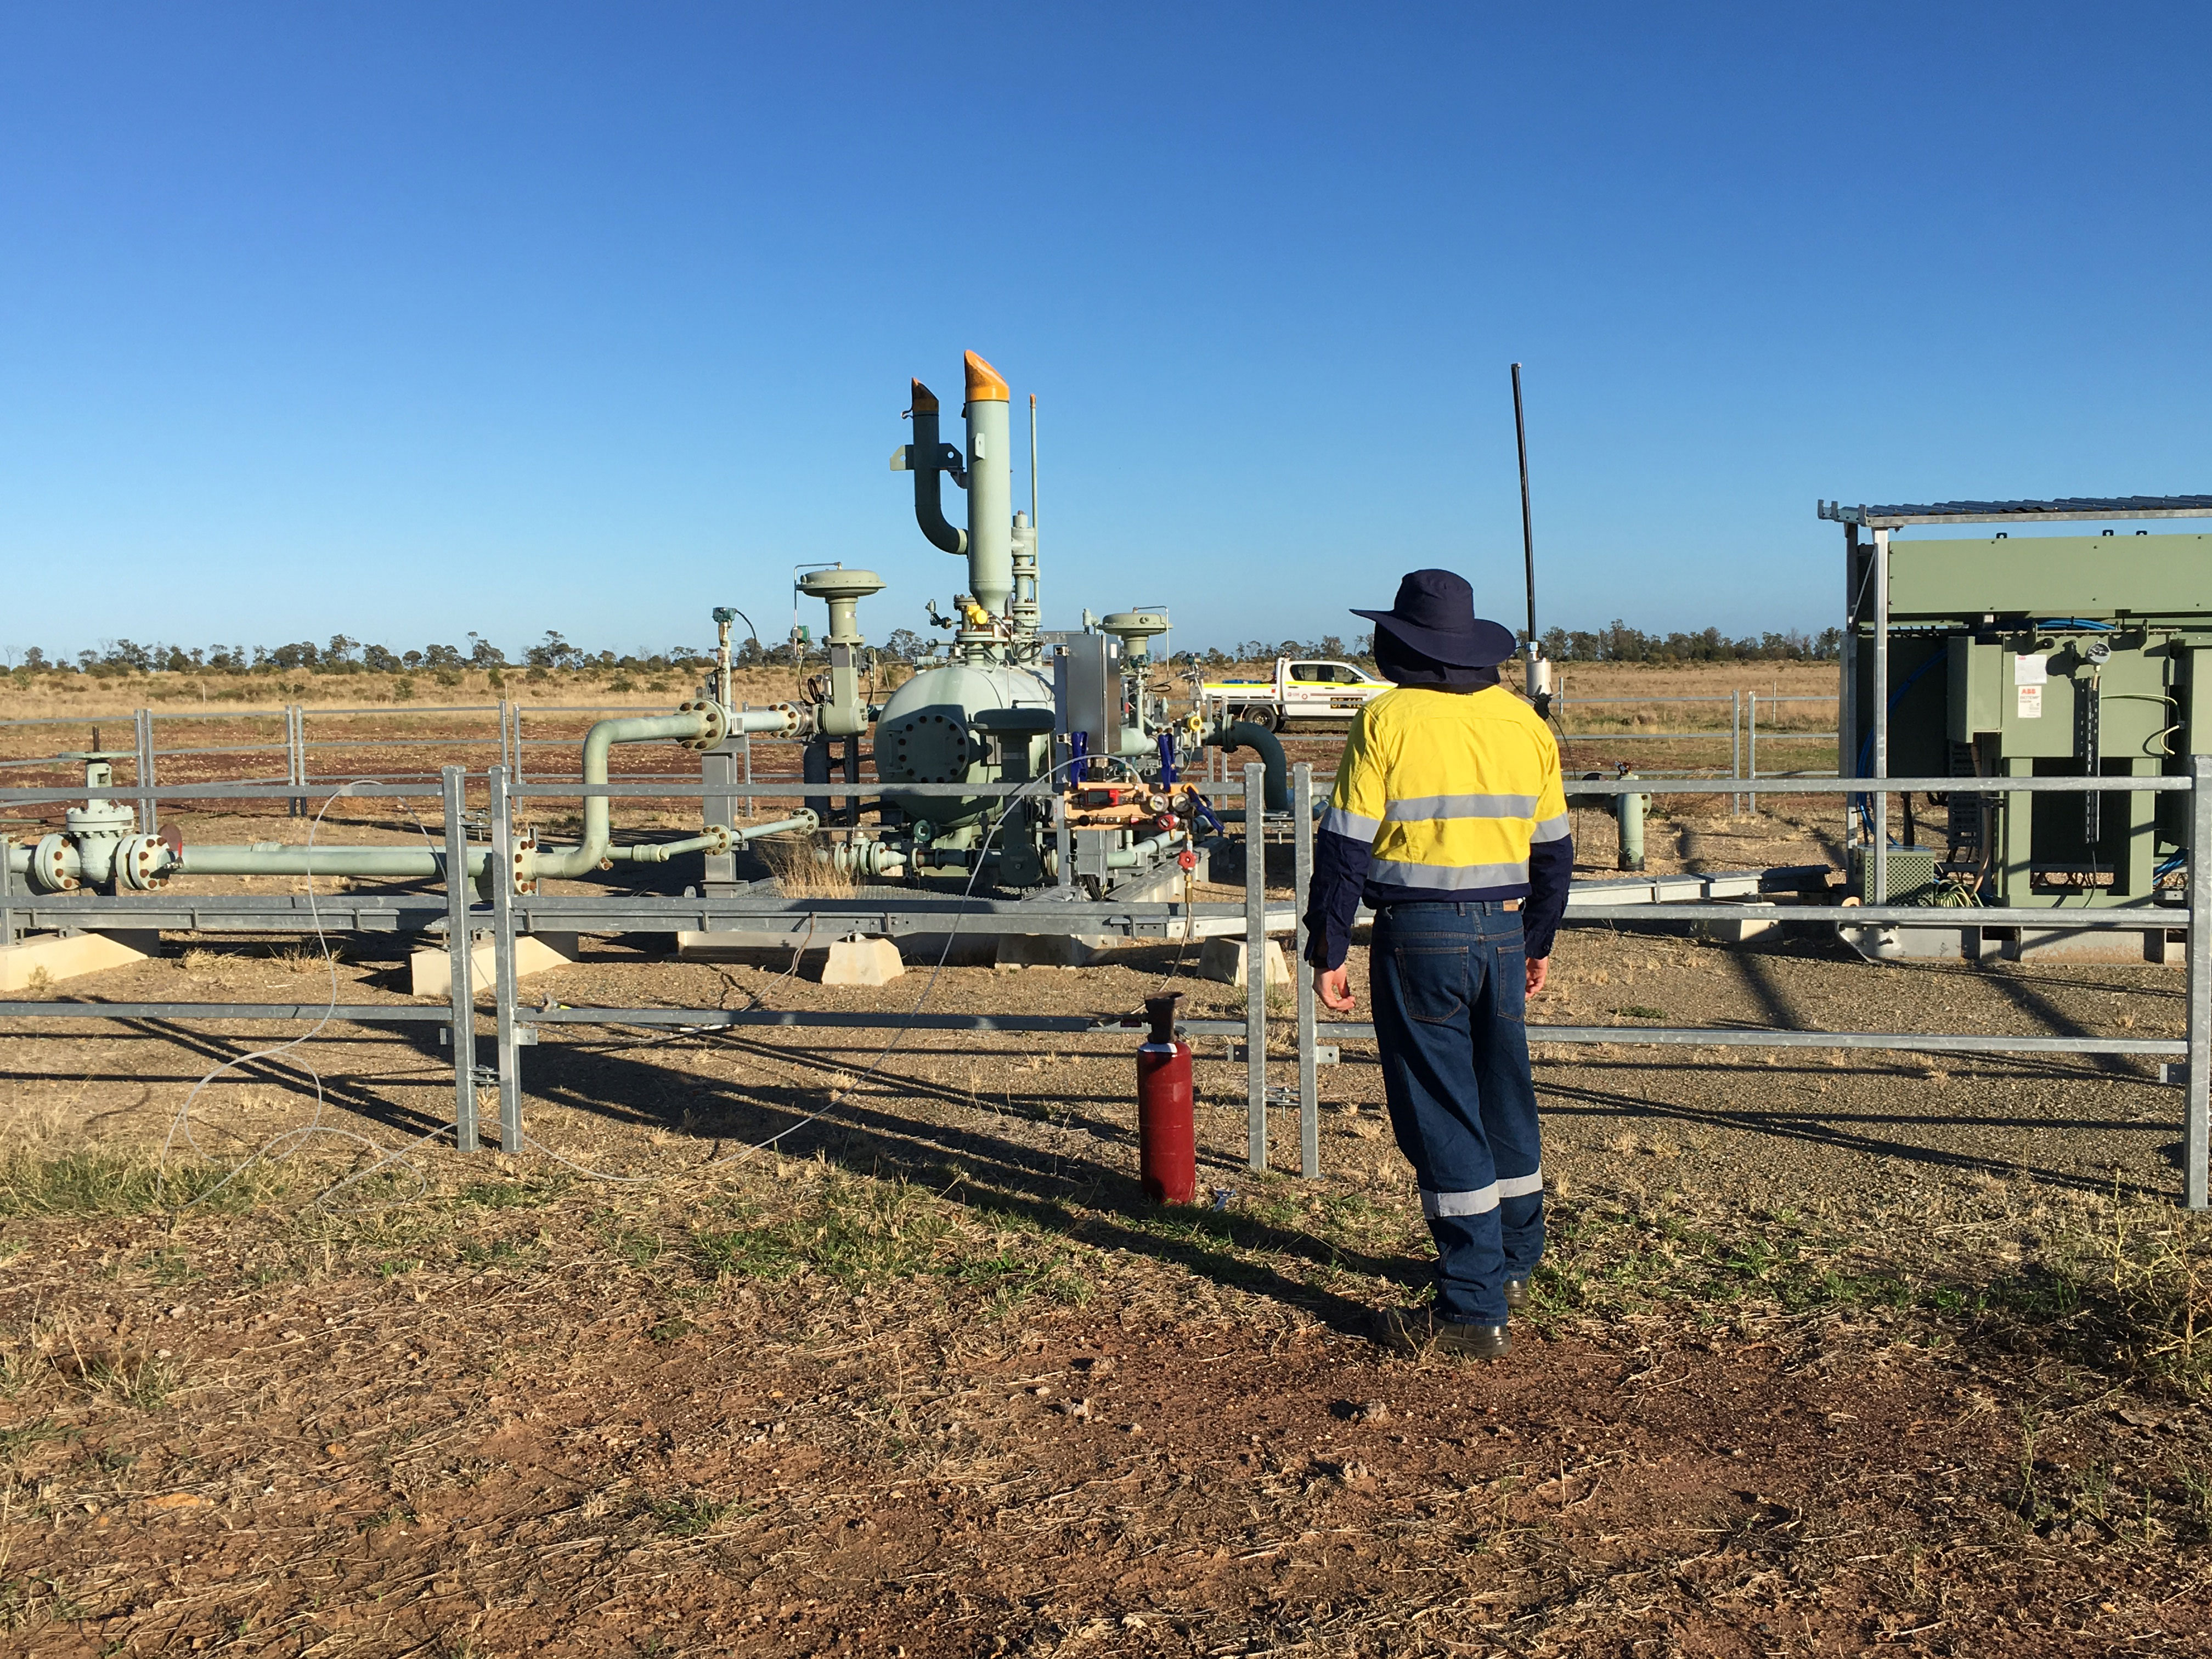 Person in workwear standing at a coal seam gas well.